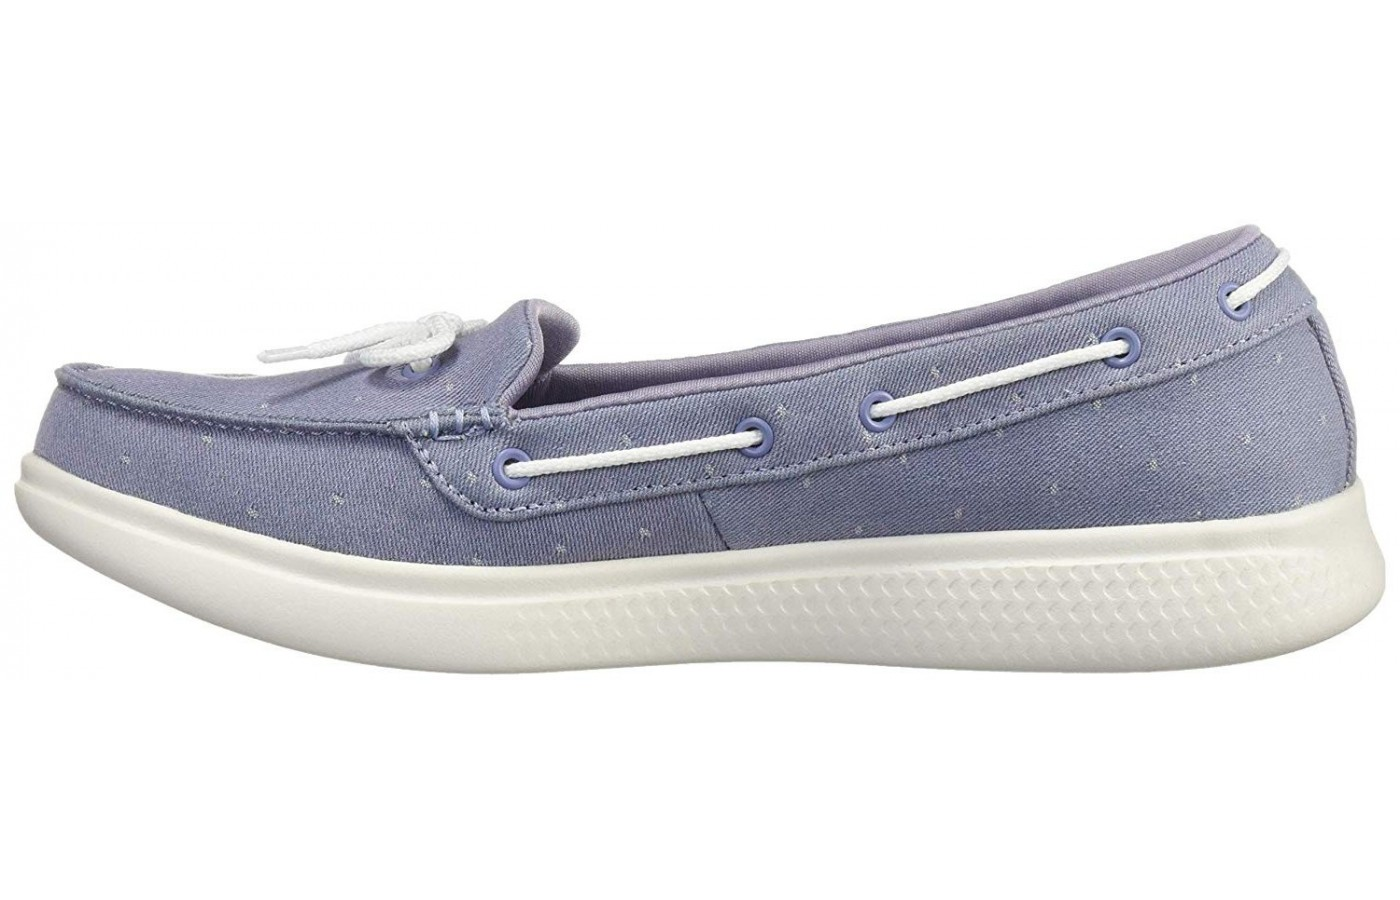 Skechers On The GO Glide Ultra Ocean is a deck-inspired shoe